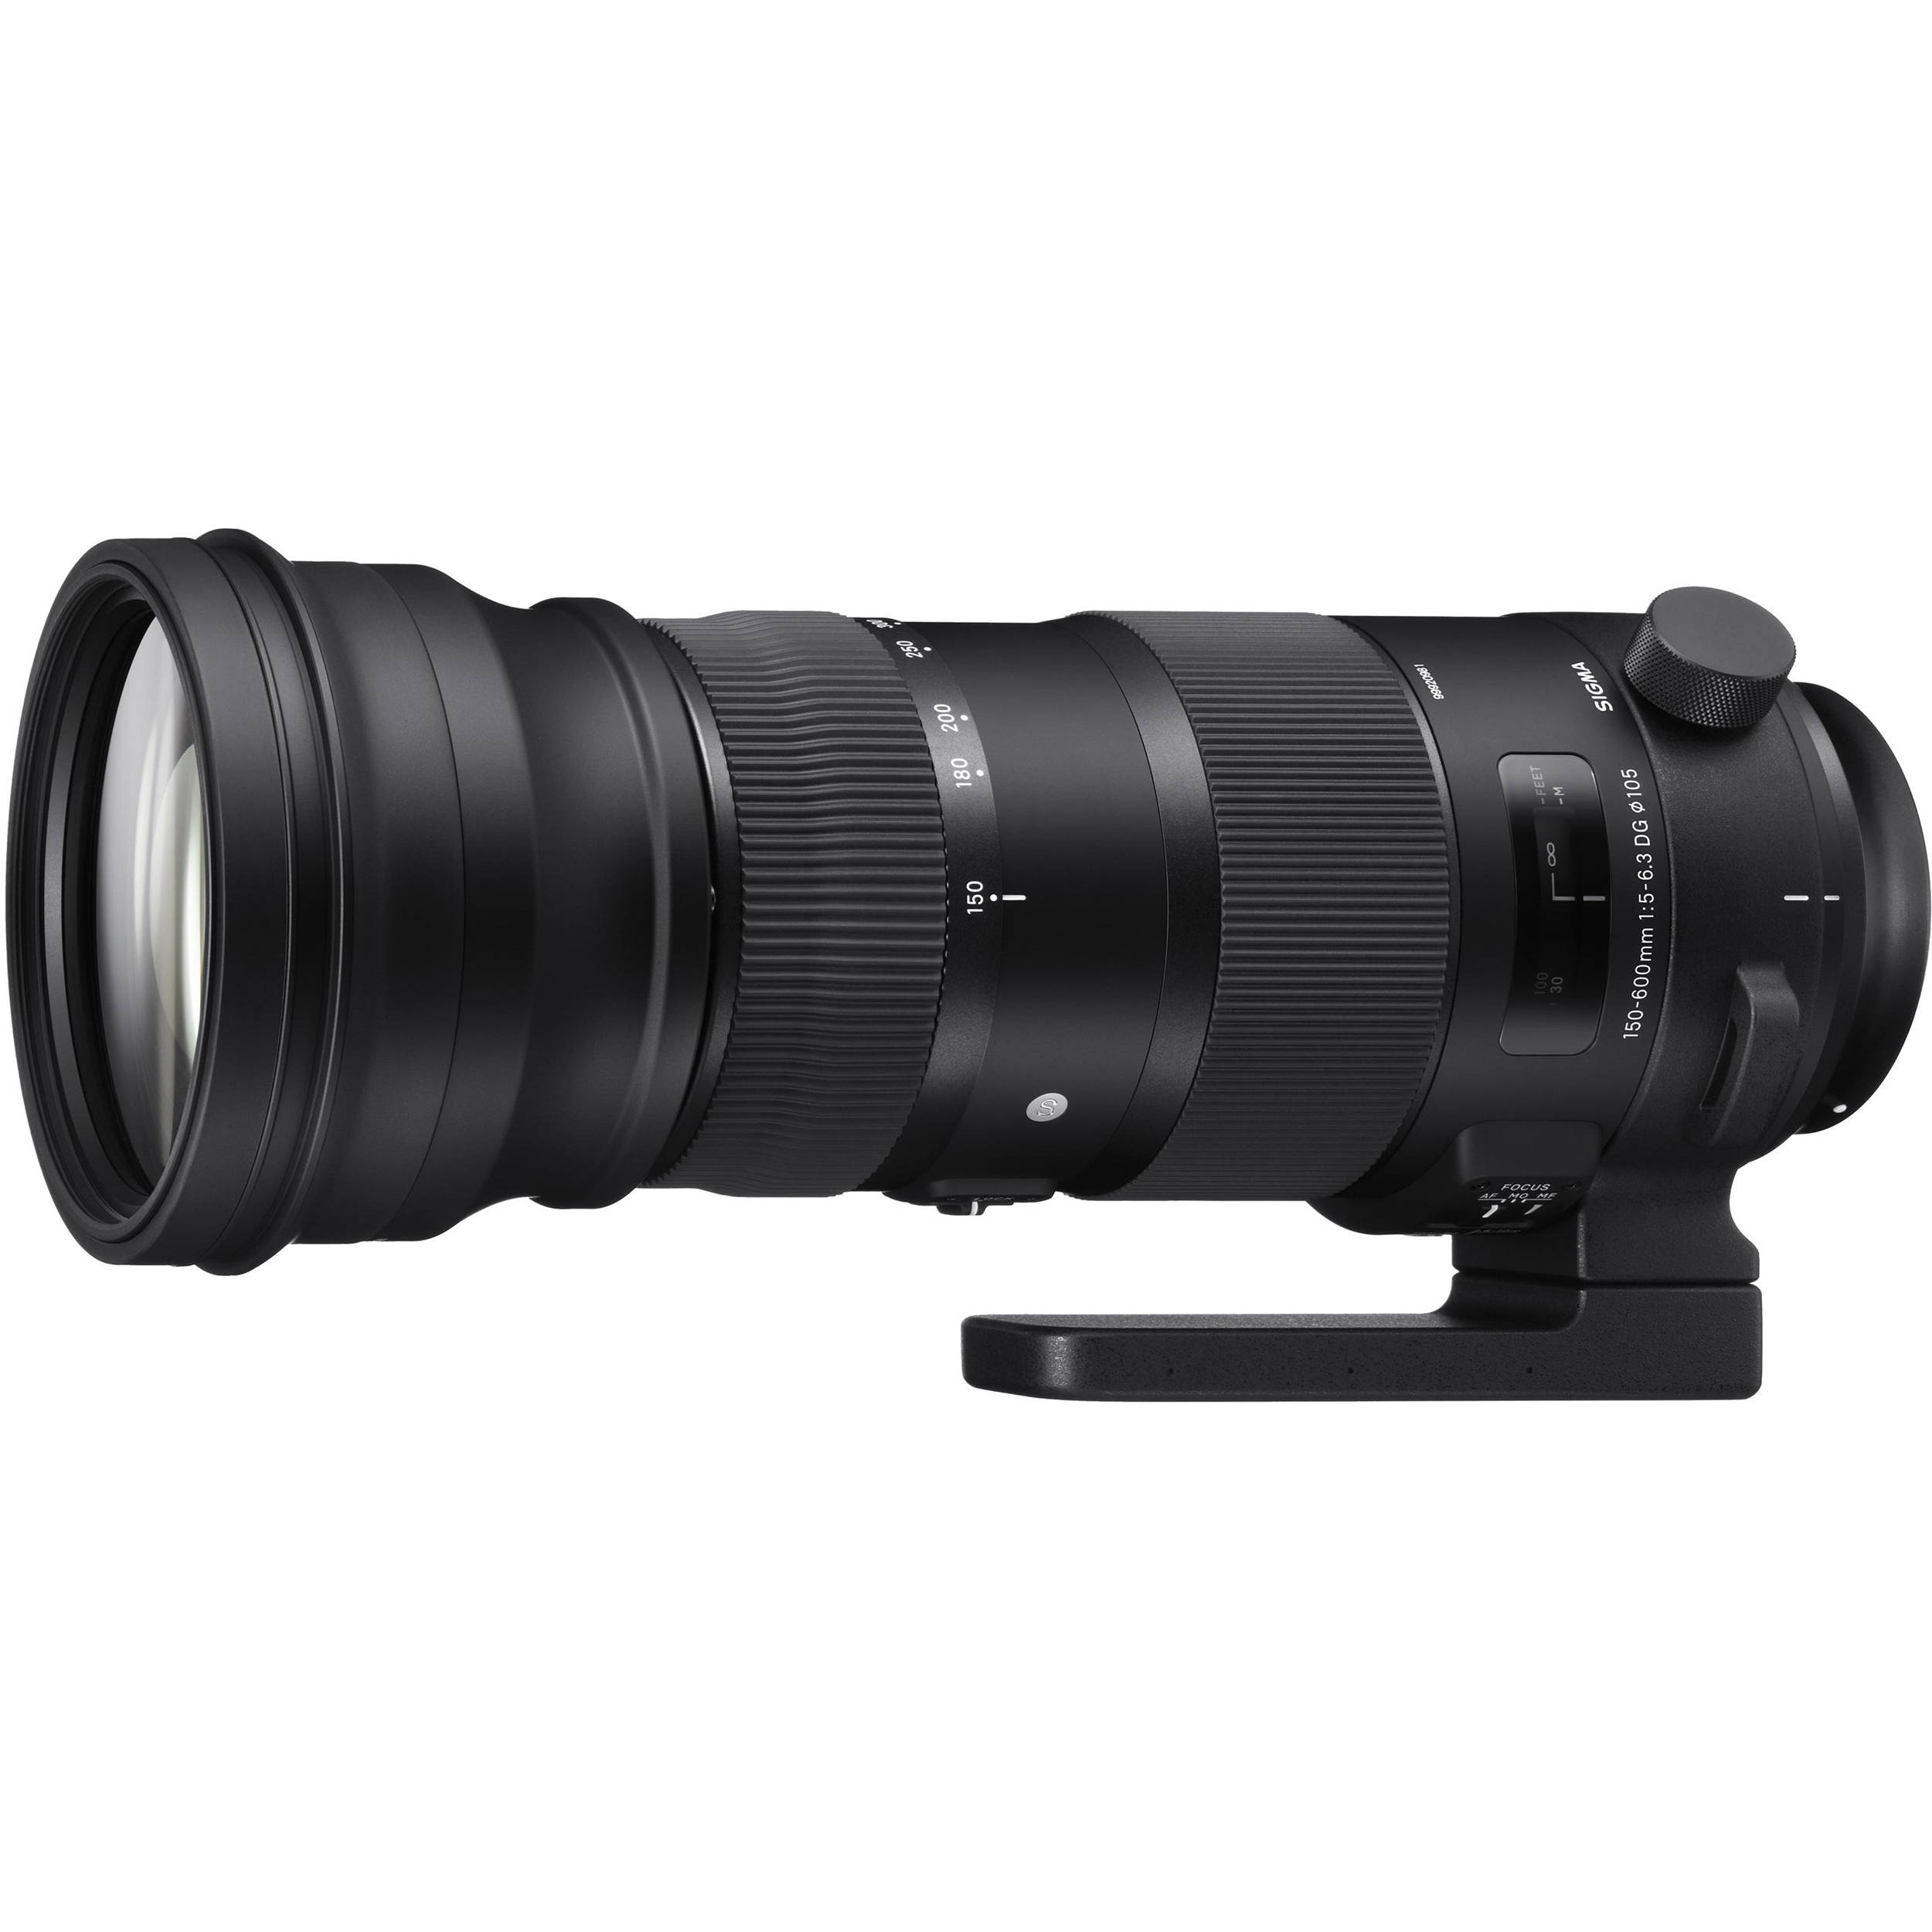 Sigma Announces 150-600mm Firmware Update To Solve Odd Overexposure